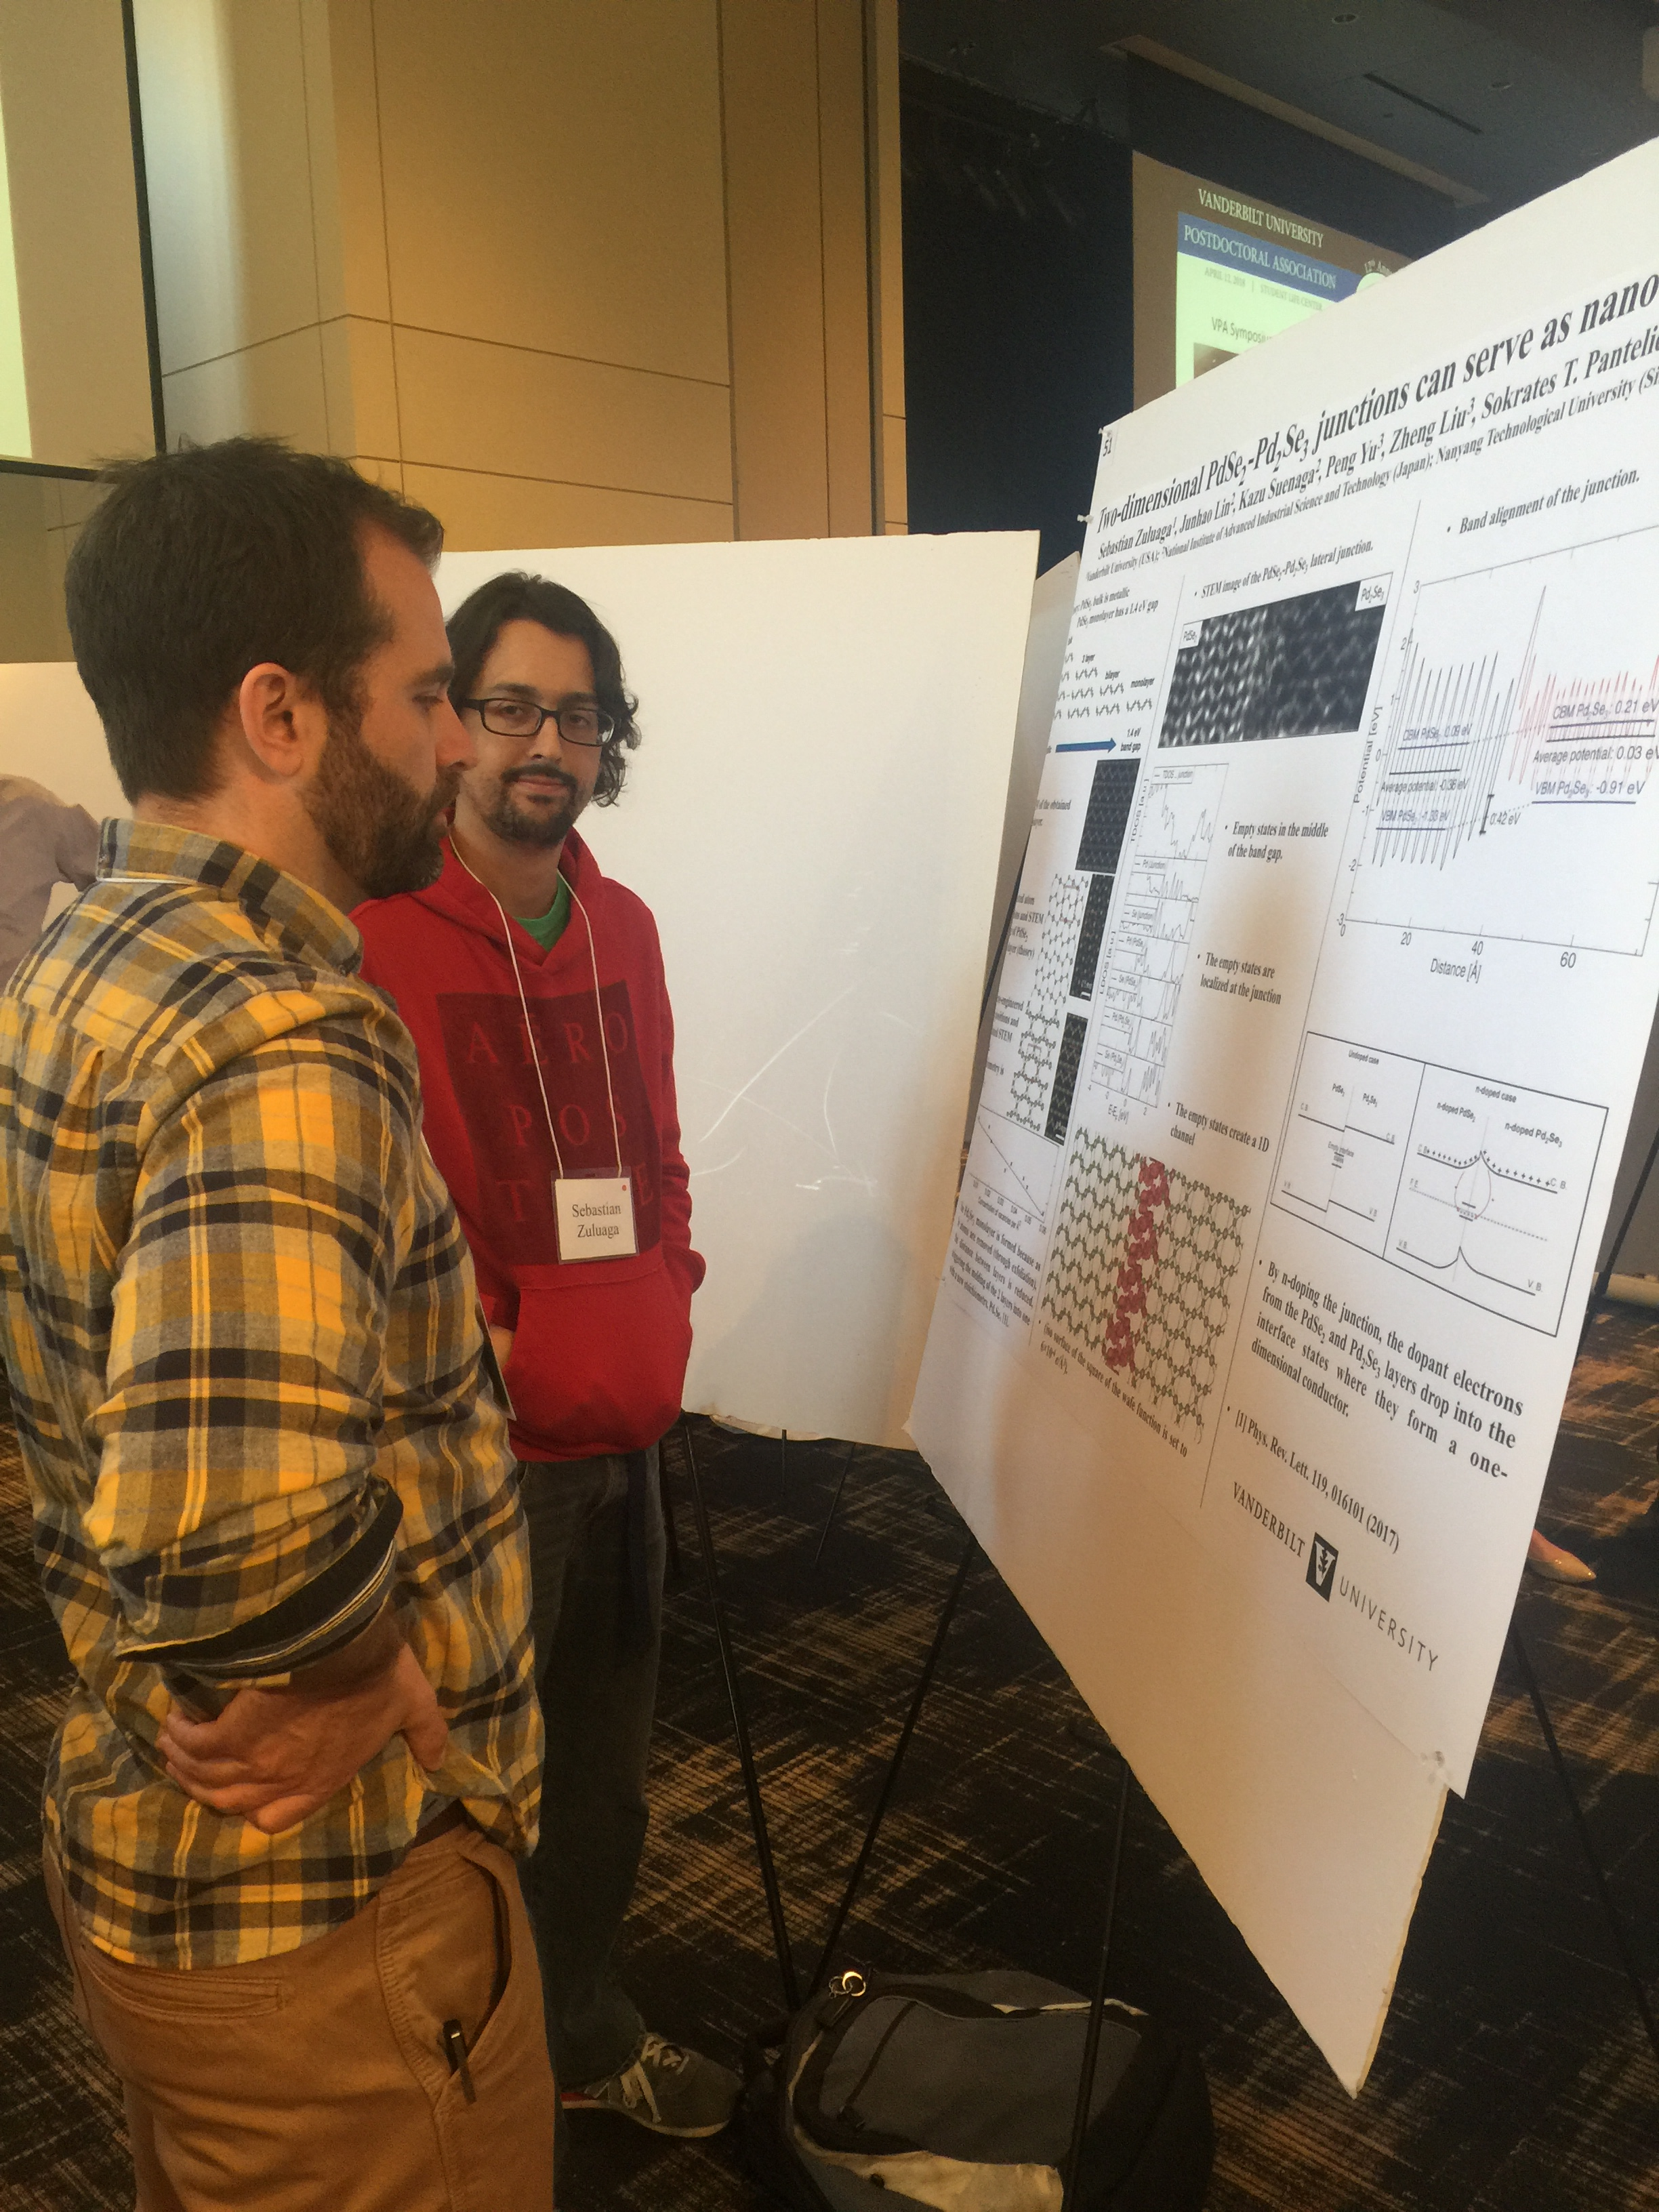 Vanderbilt Postdoctoral Association 2018 Symposium: Sebastian Zuluaga presents his poster.